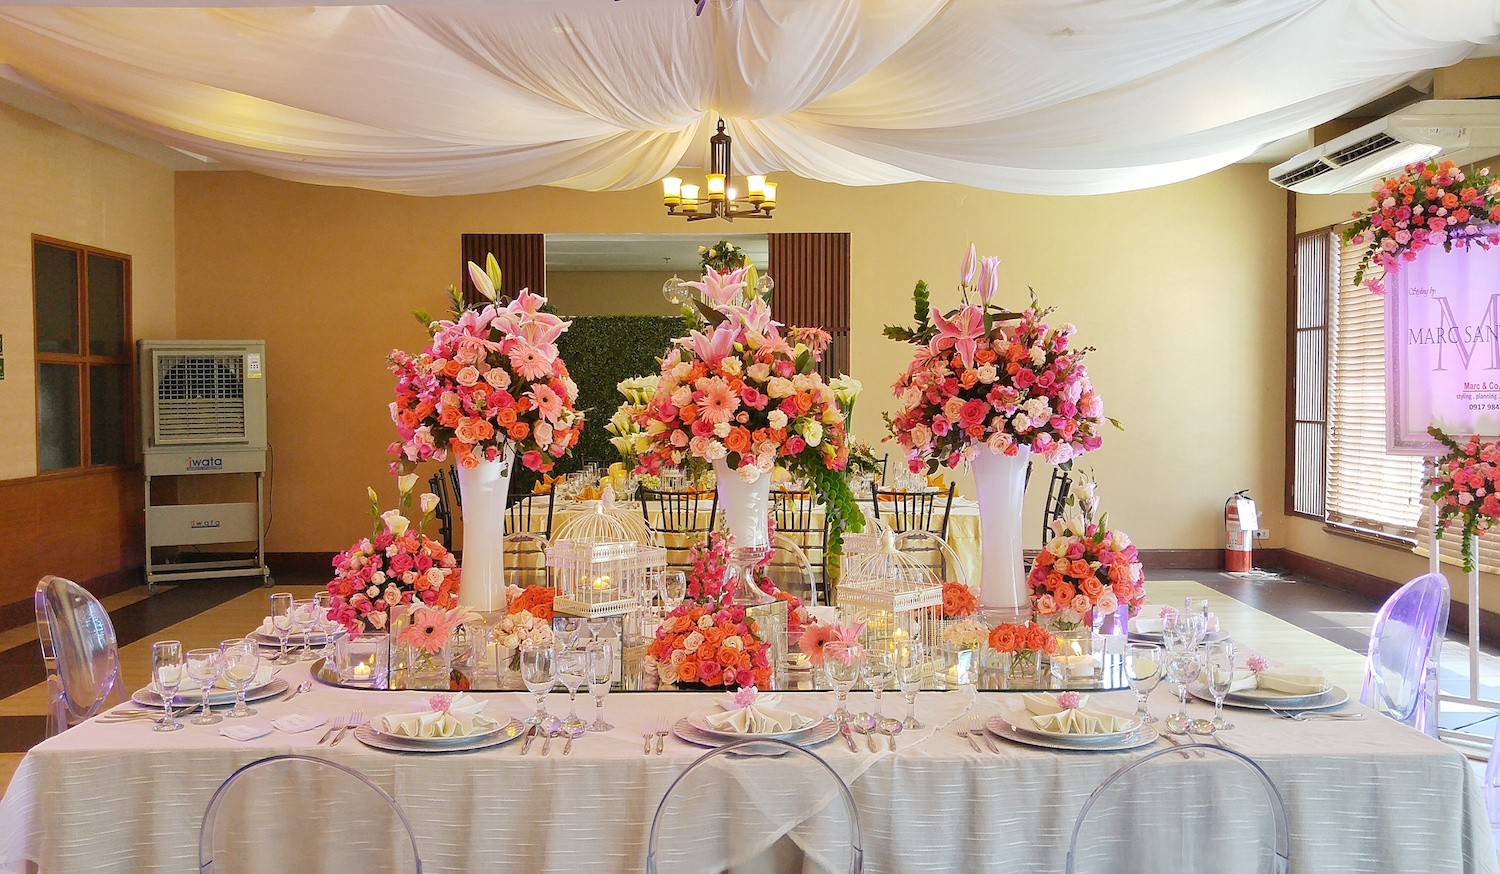 Aristocrat Restaurant Affordable Manila Wedding Packages And Manila